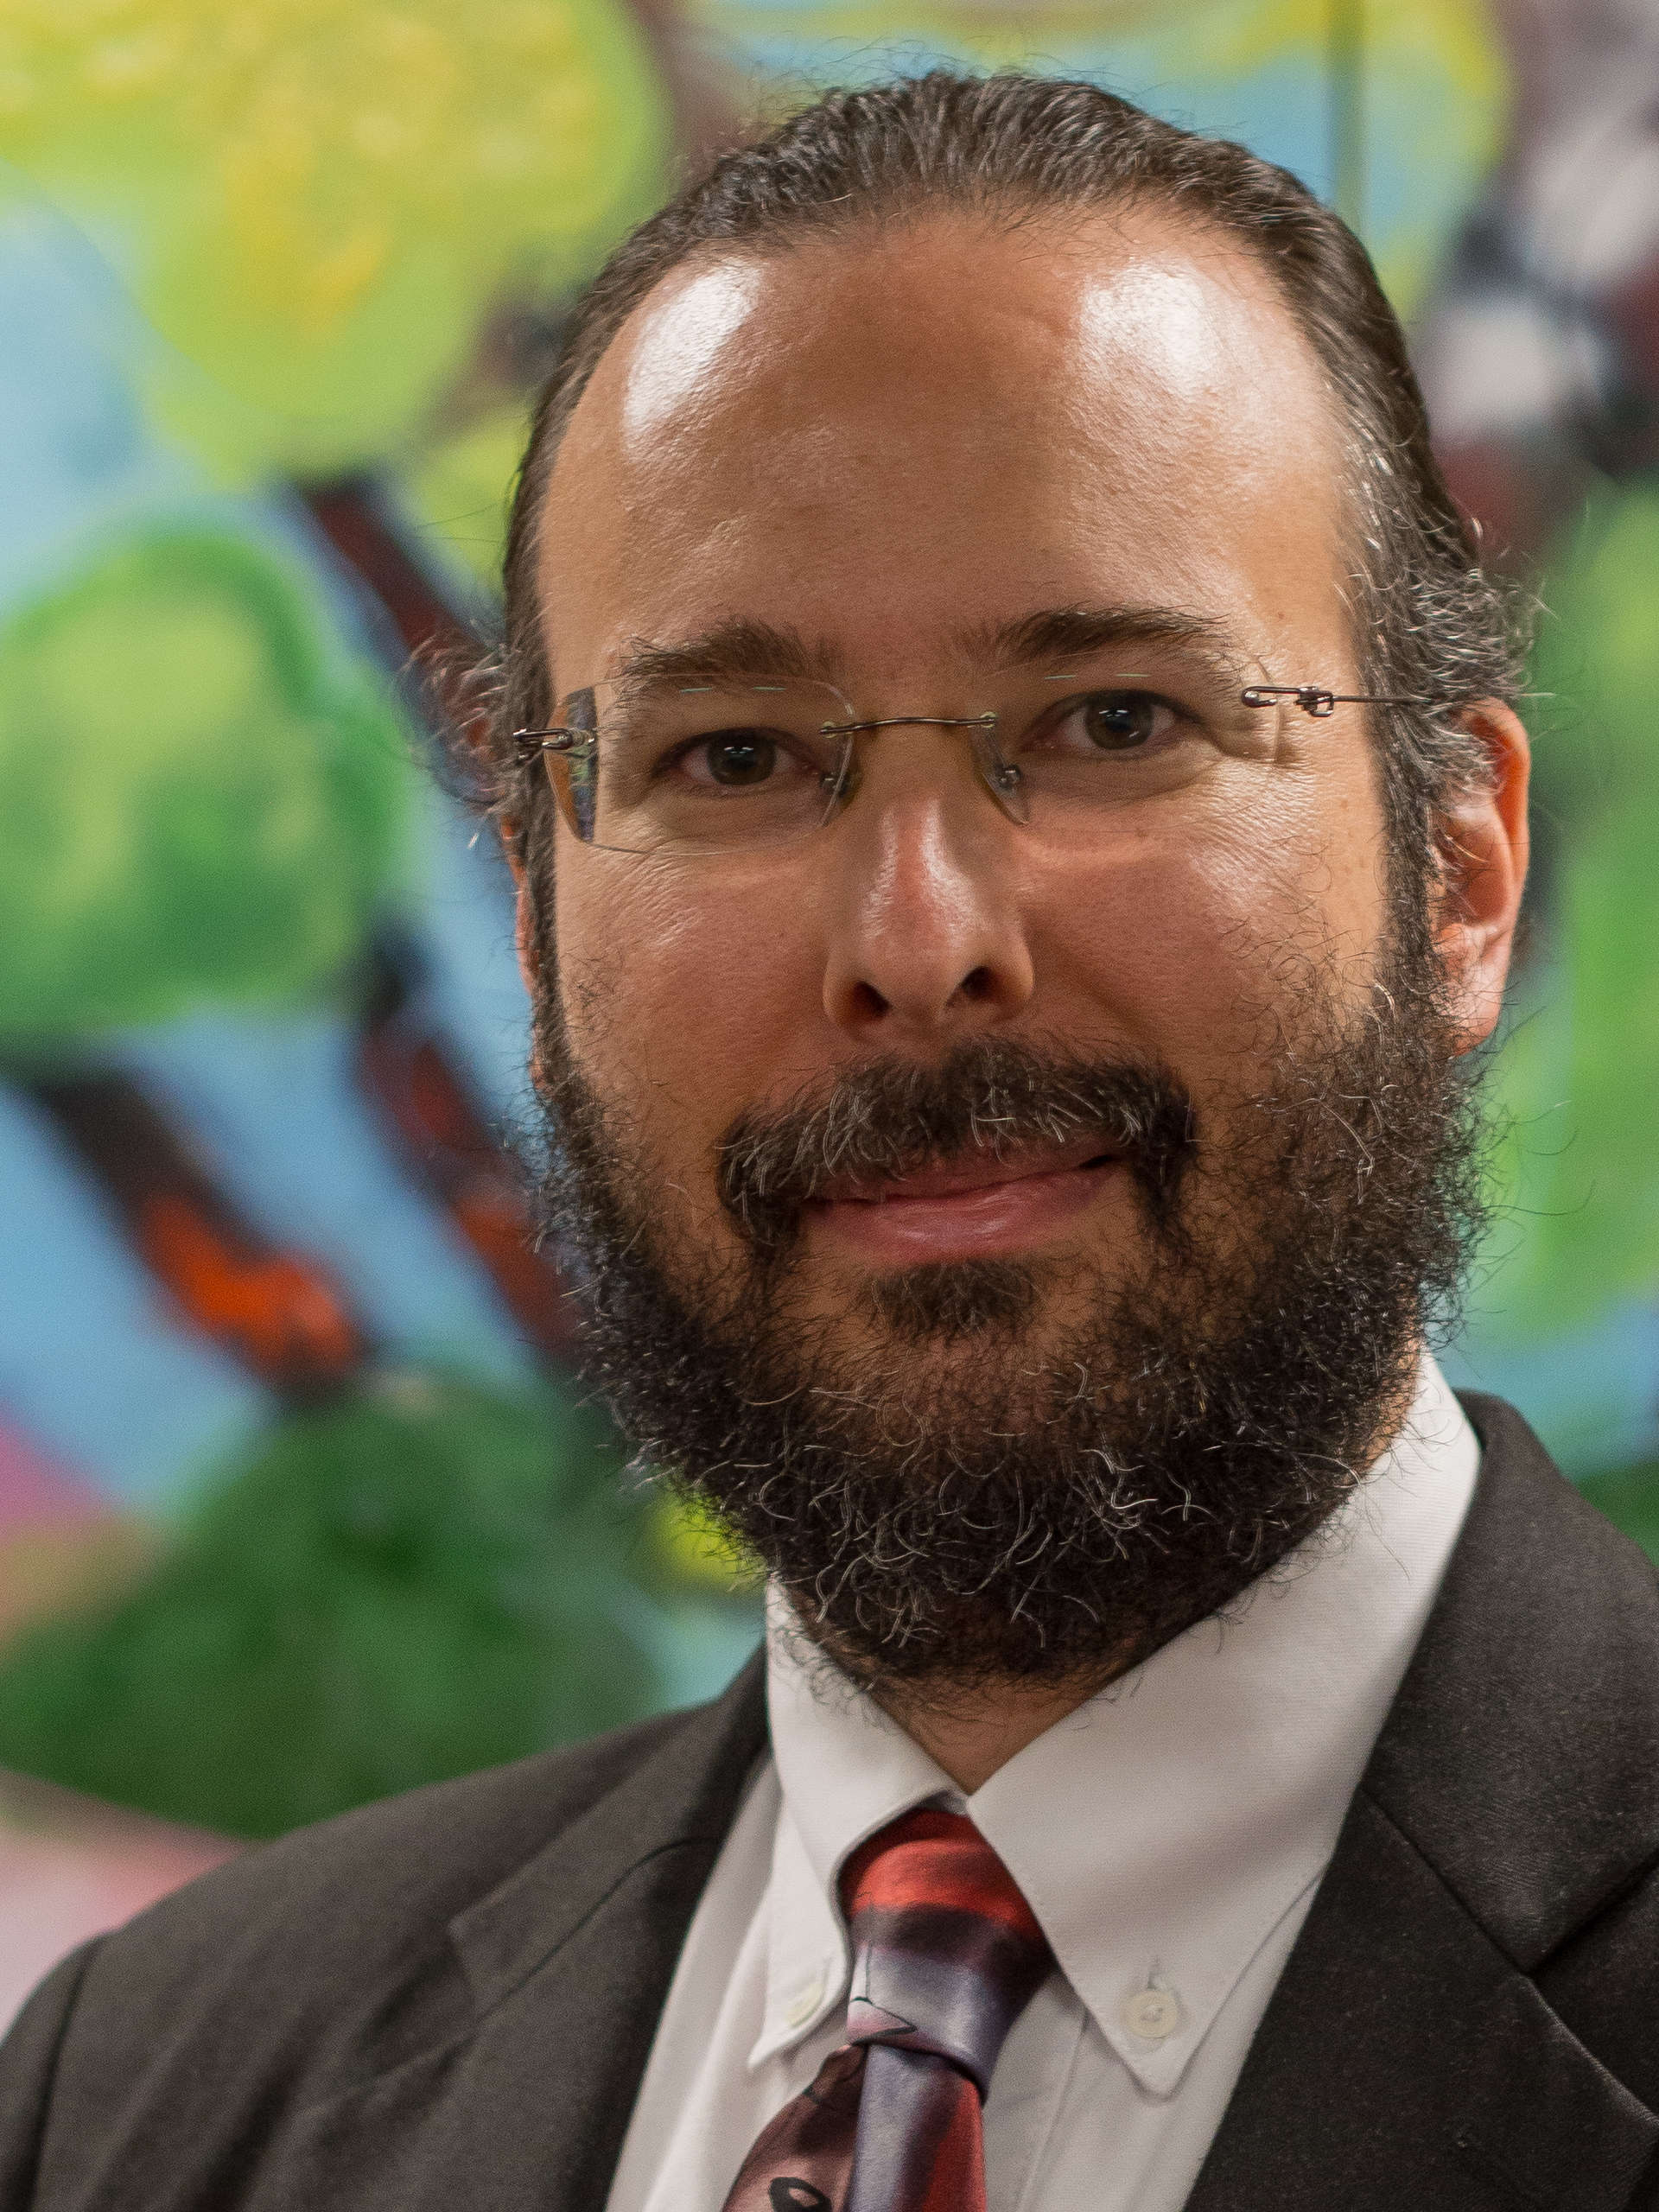 Rabbi Joshua Neely